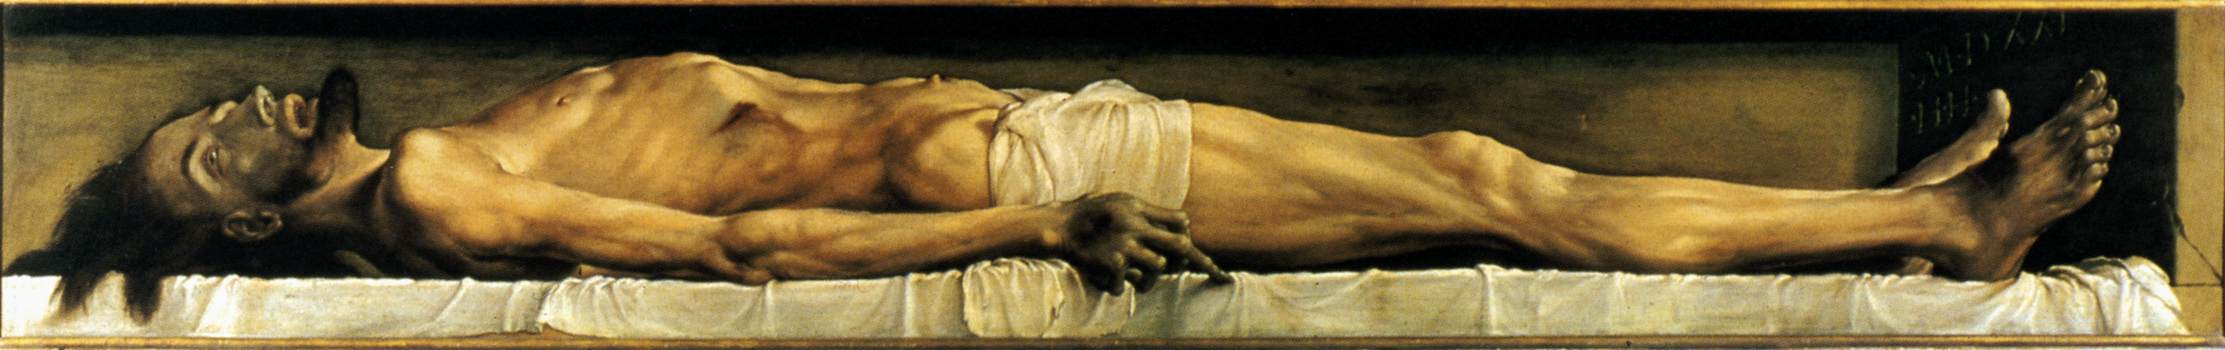 The Body of the Dead Christ in the Tomb